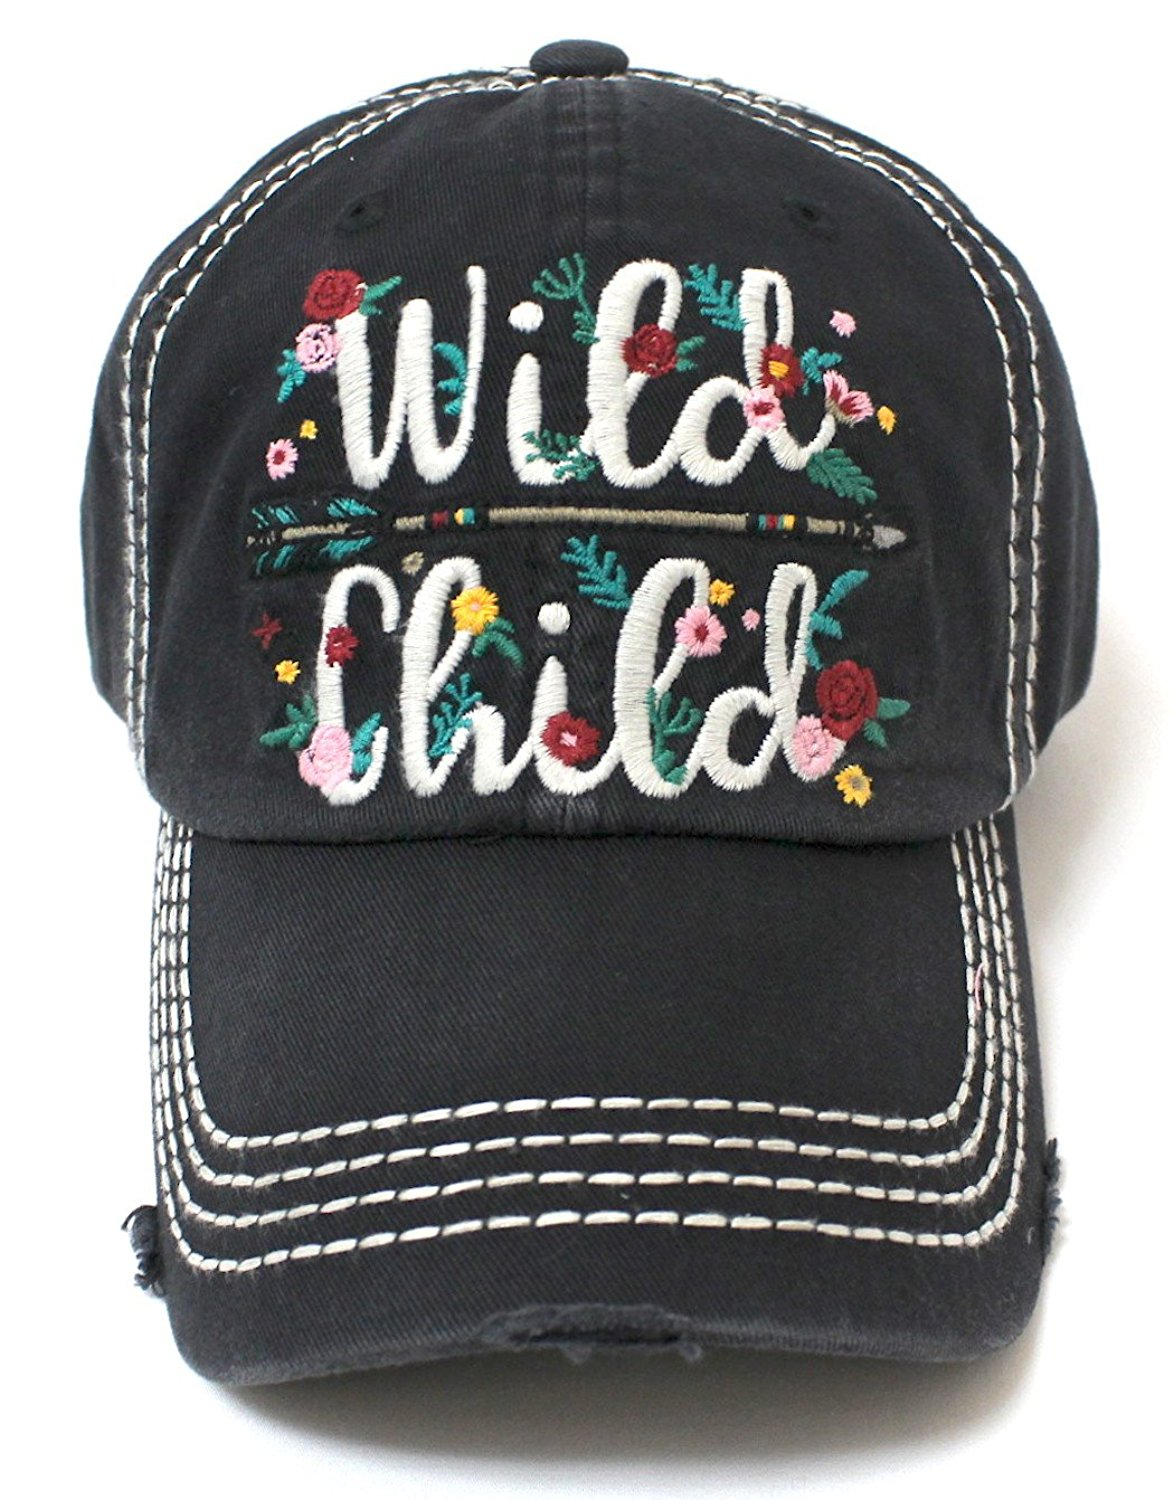 New!! Black Wild Child Floral Arrow Embroidery Cap - Caps 'N Vintage